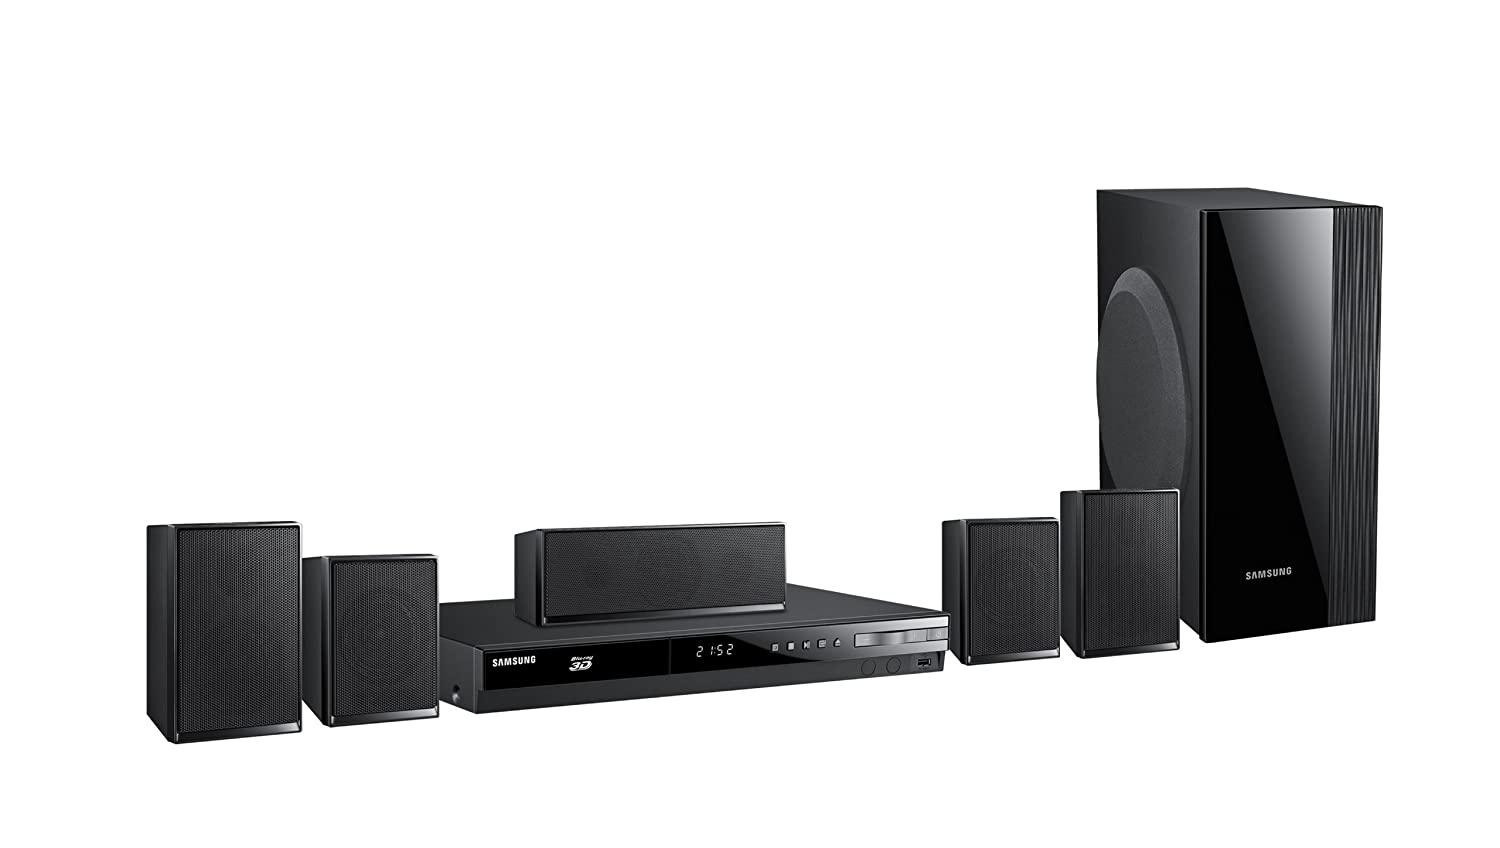 sold samsung ht e4500 3d blu ray 1000w 5 1 home theater system like new 170 for sale. Black Bedroom Furniture Sets. Home Design Ideas